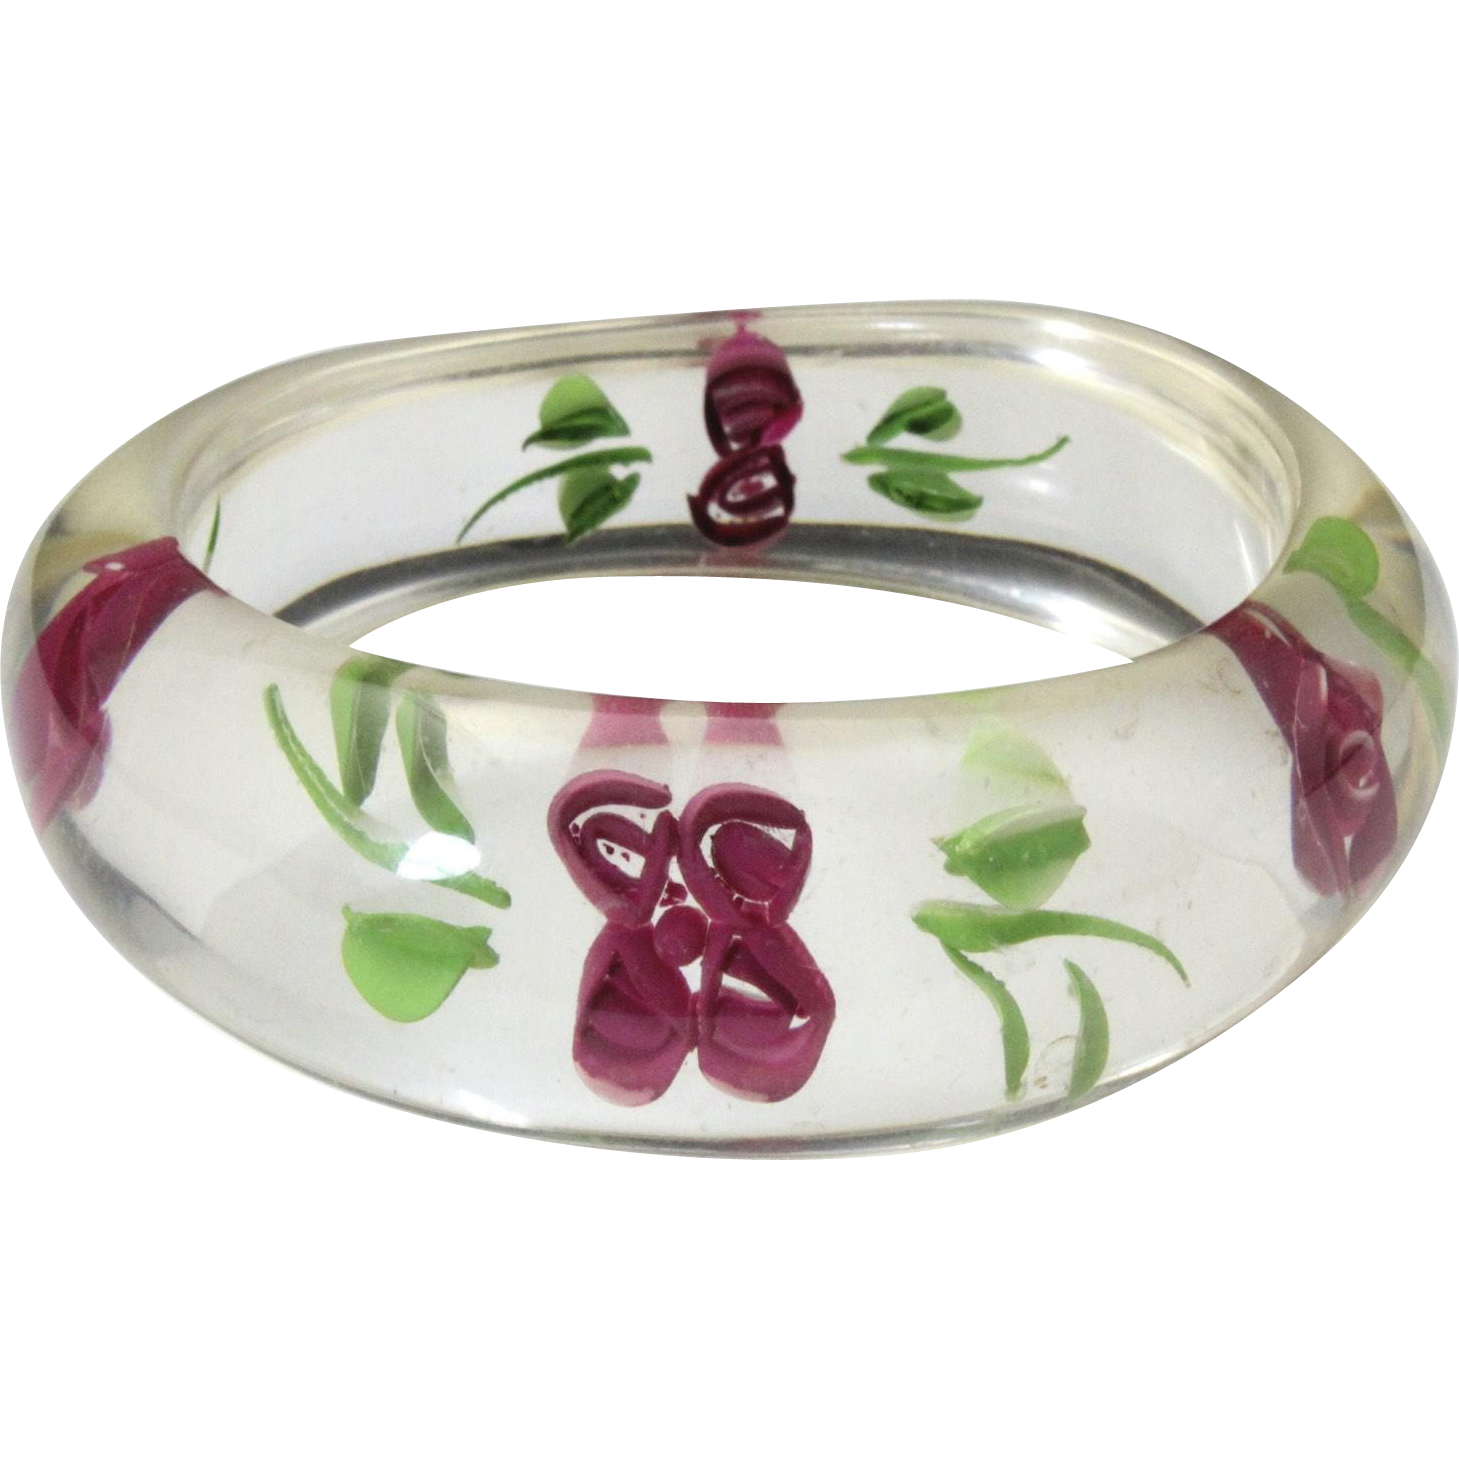 Vintage 1960s Lucite Rose Bangle Bracelet Flower Power Hippie Mod Jewelry Retro